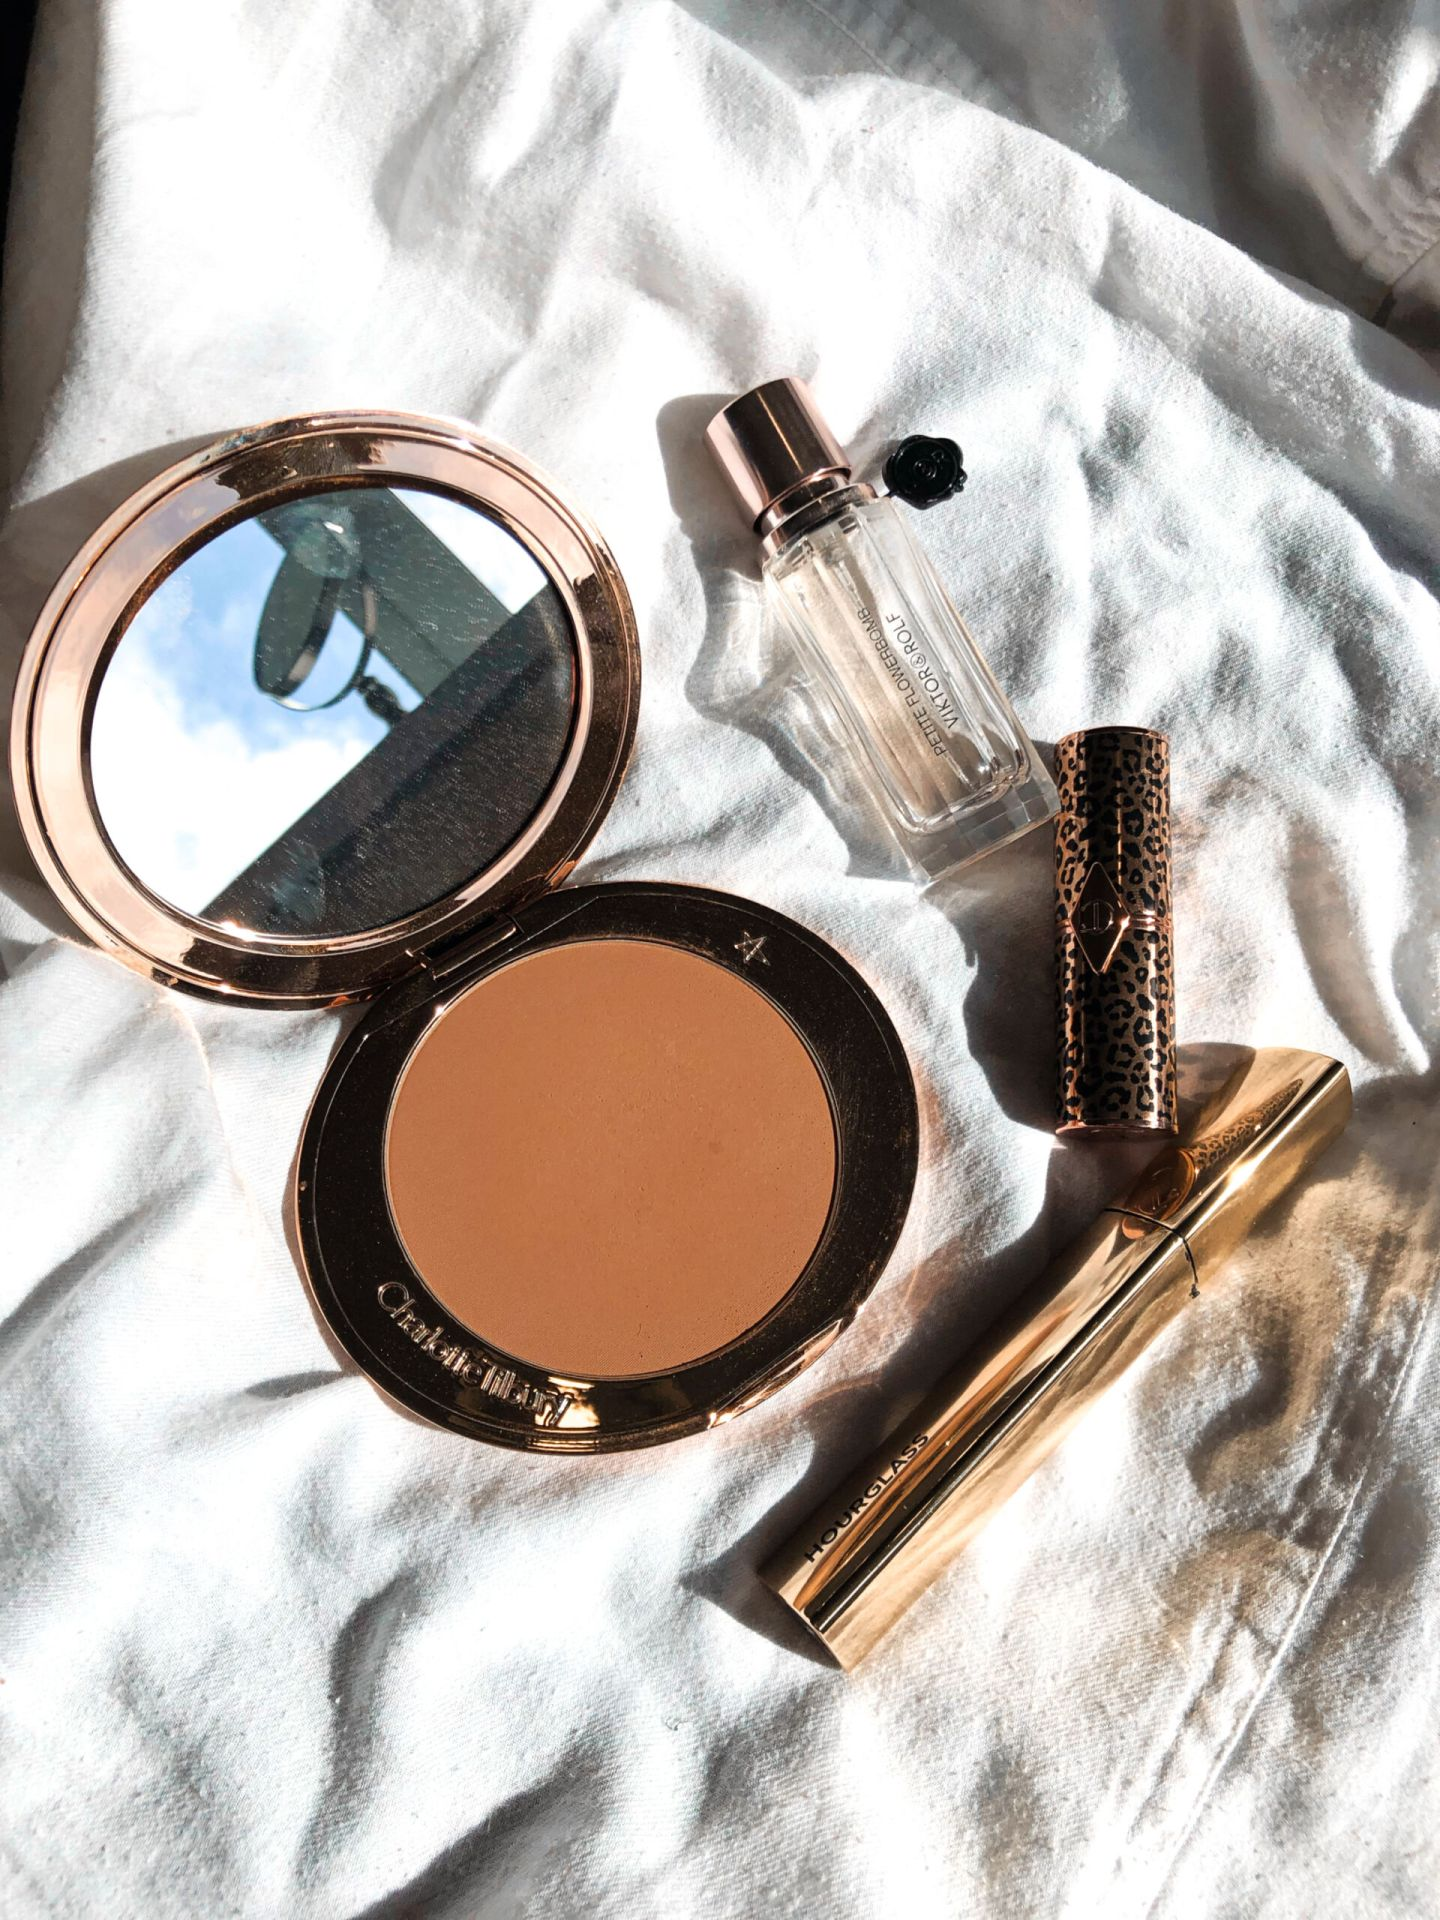 Charlotte Tilbury Airbrush Foundation